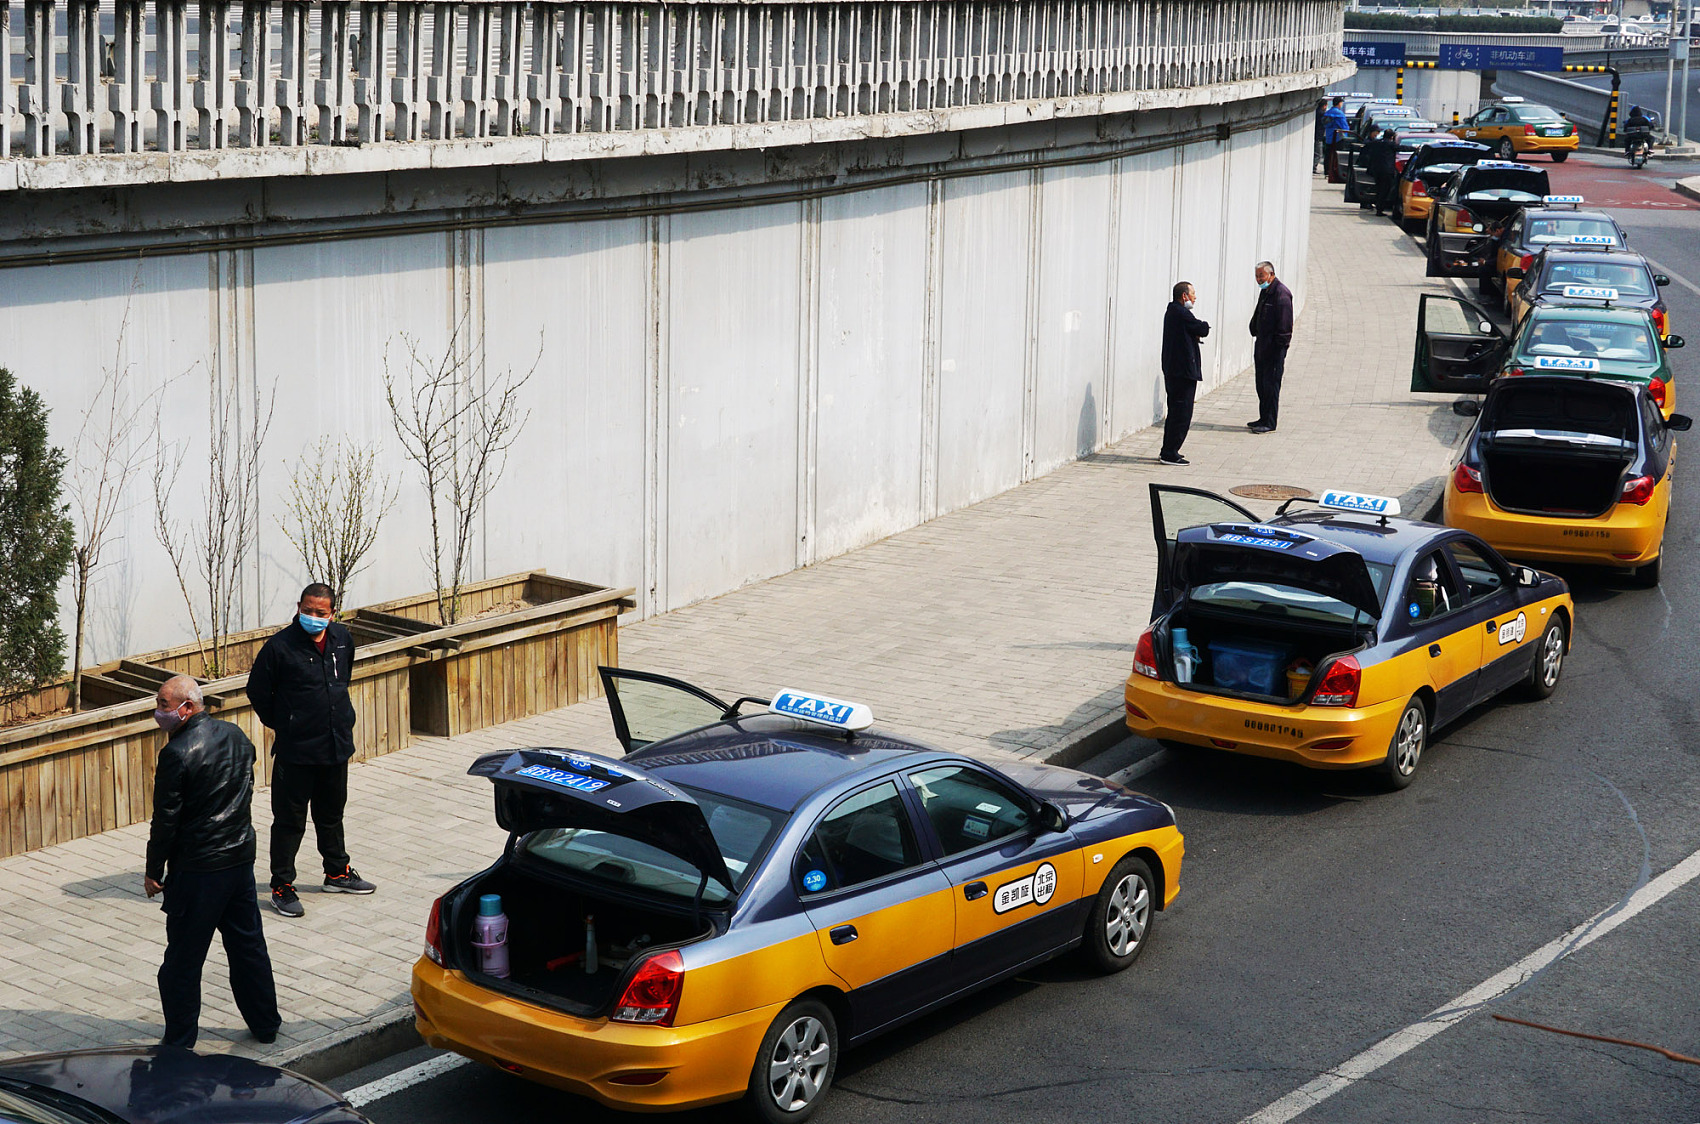 Beijing taxis asked to stay in the city